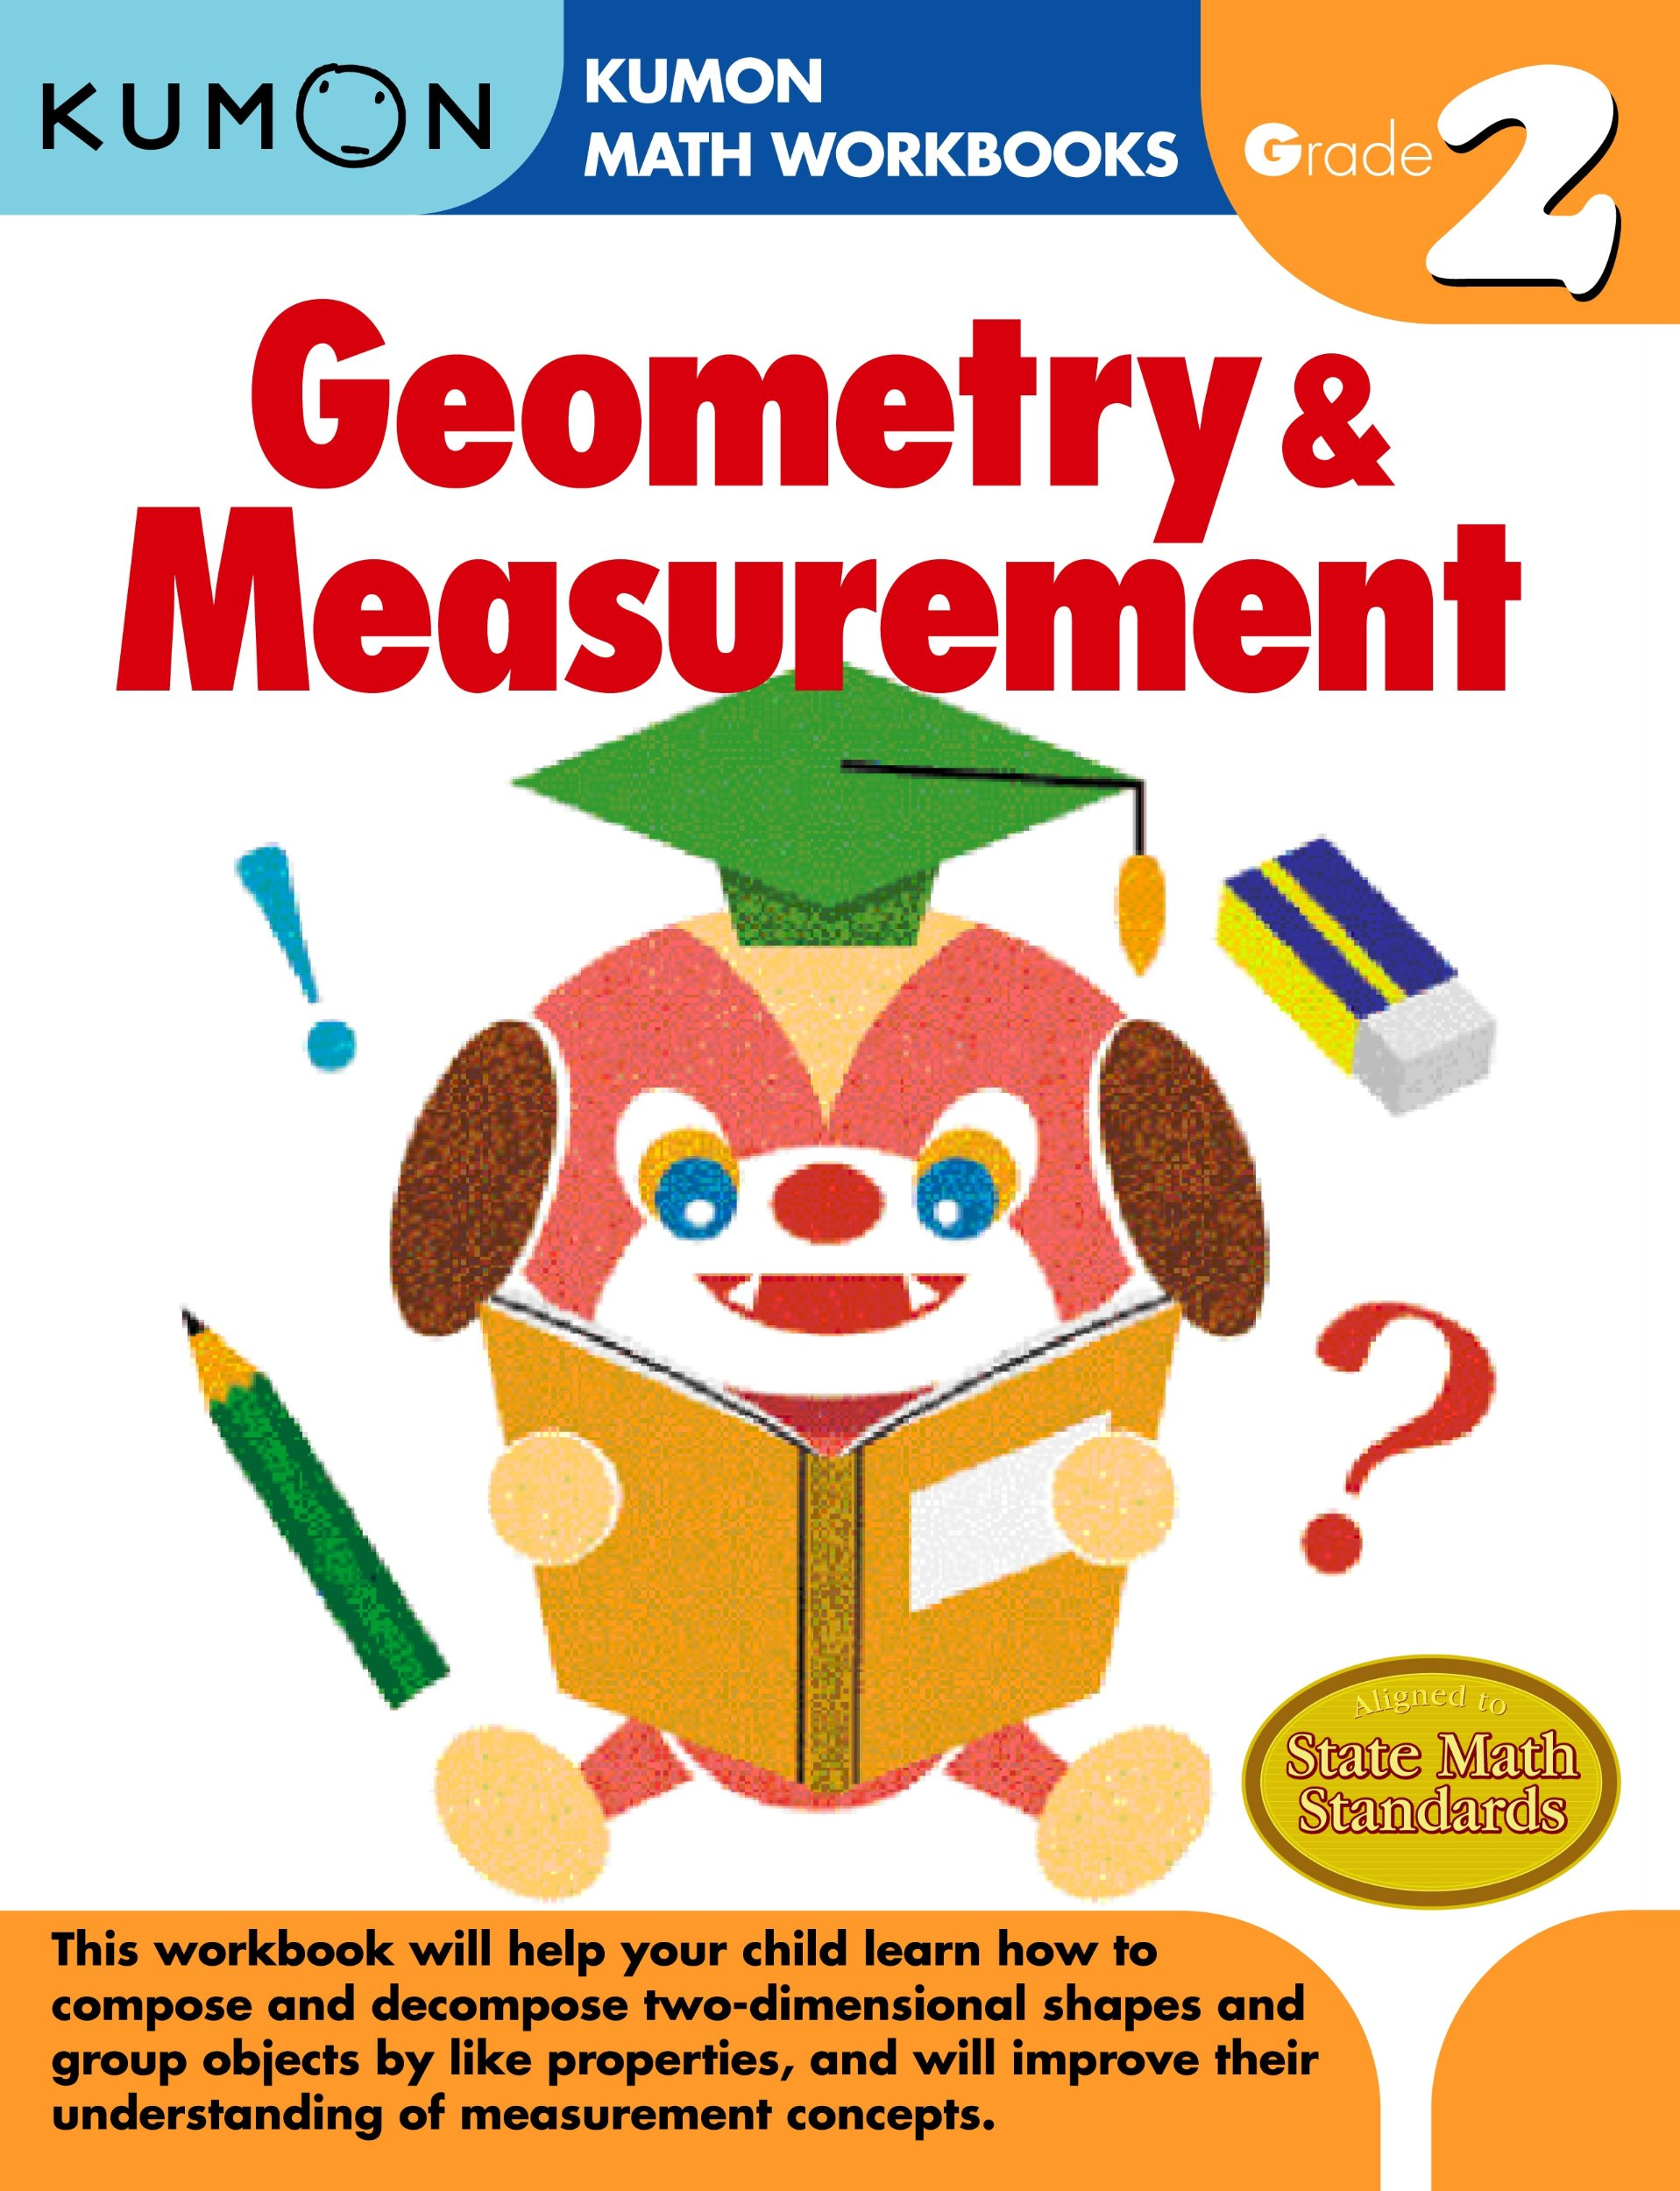 Geometry & Measurement Grade 2 (Kumon Math Workbooks): Kumon ...